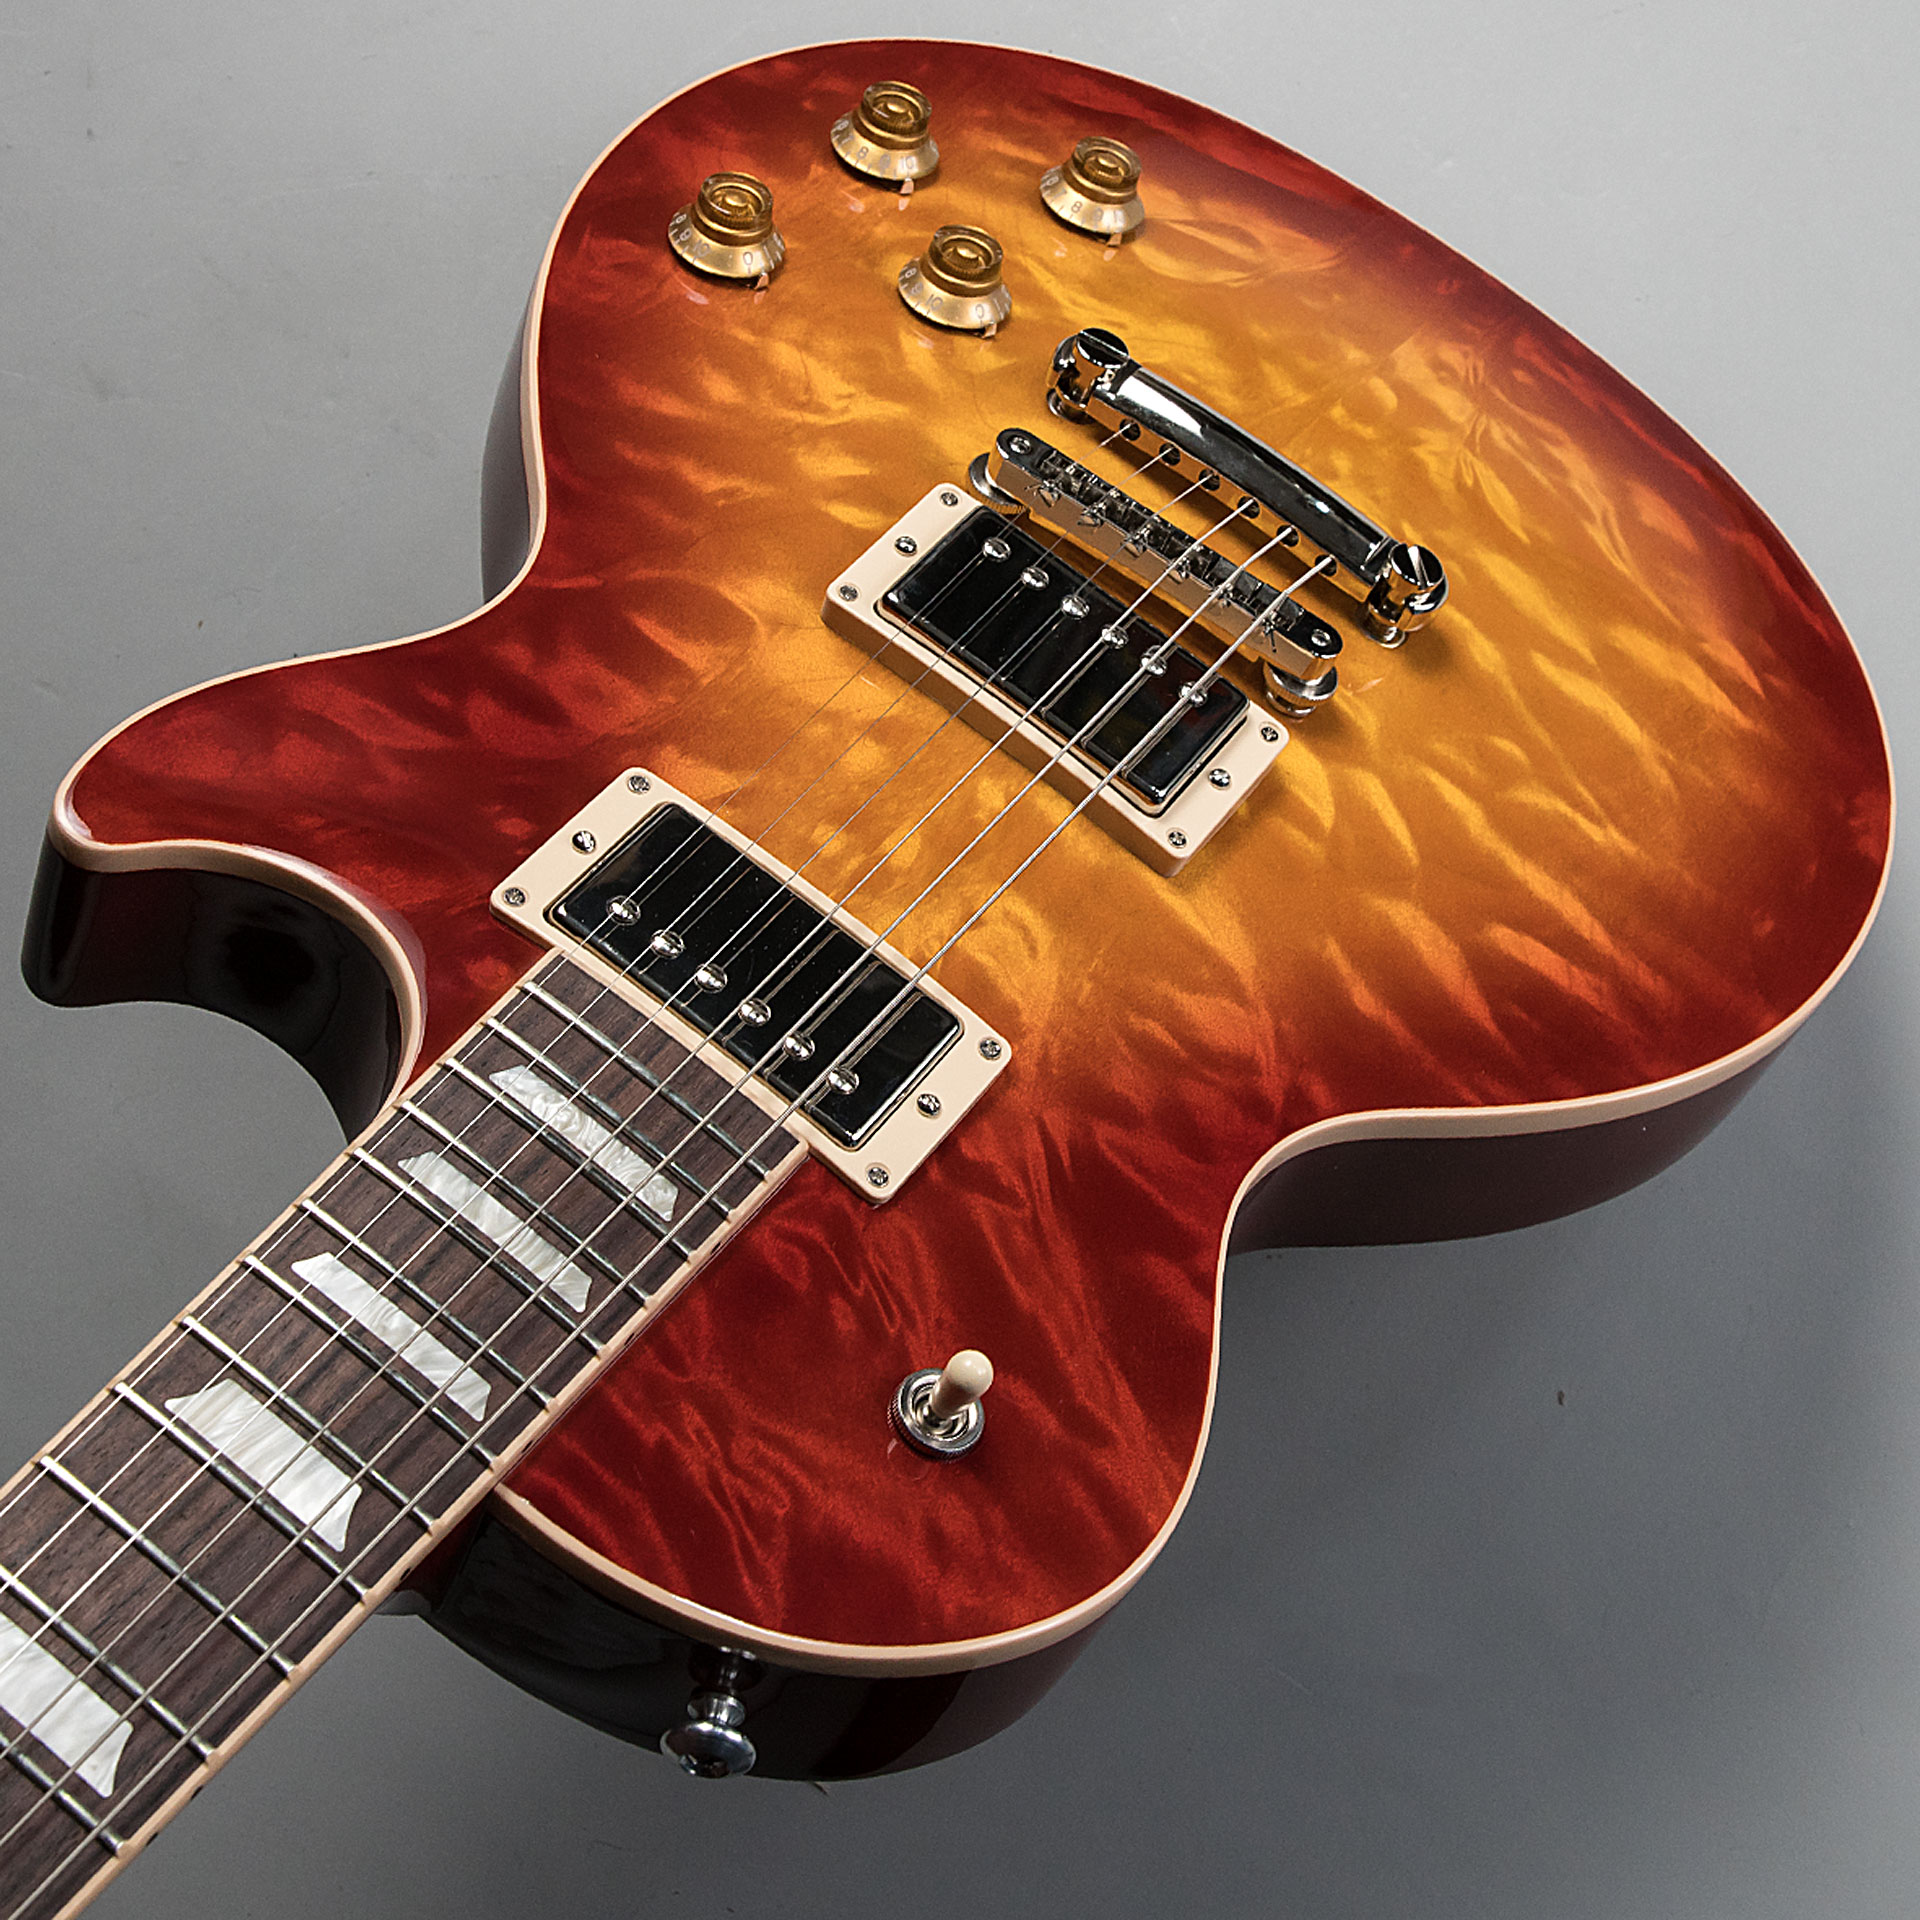 Les Paul Traditional 2017 Quiltのケース・その他画像